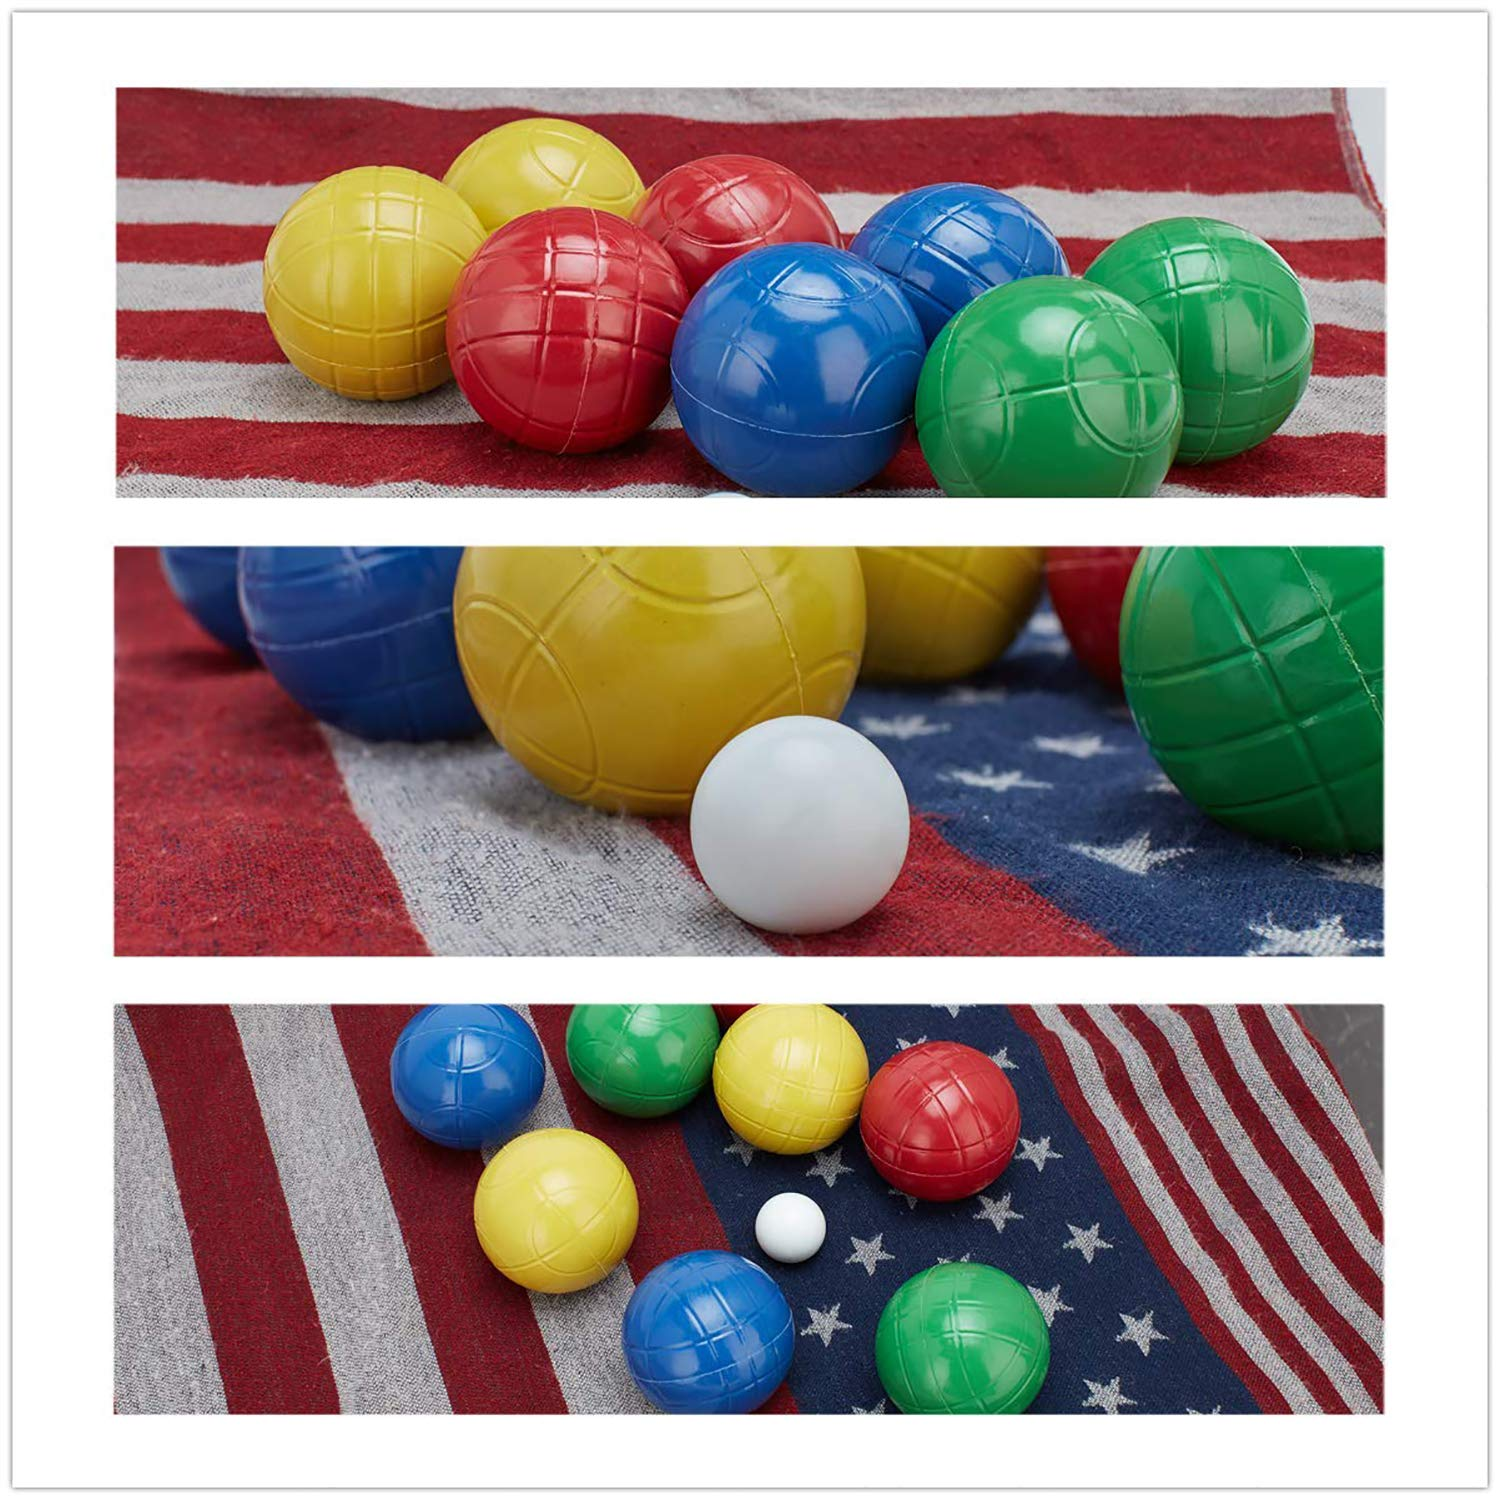 LAWN TIME 90mm Bocce Ball Set | Includes 8 Recreational Plastic Balls, 1 Pallino (Jack Ball) and 1 Nylon Zip-Up Carrying Case | Beach, Backyard or Outdoor Party Game - Family Fun for All Ages by LAWN TIME (Image #3)